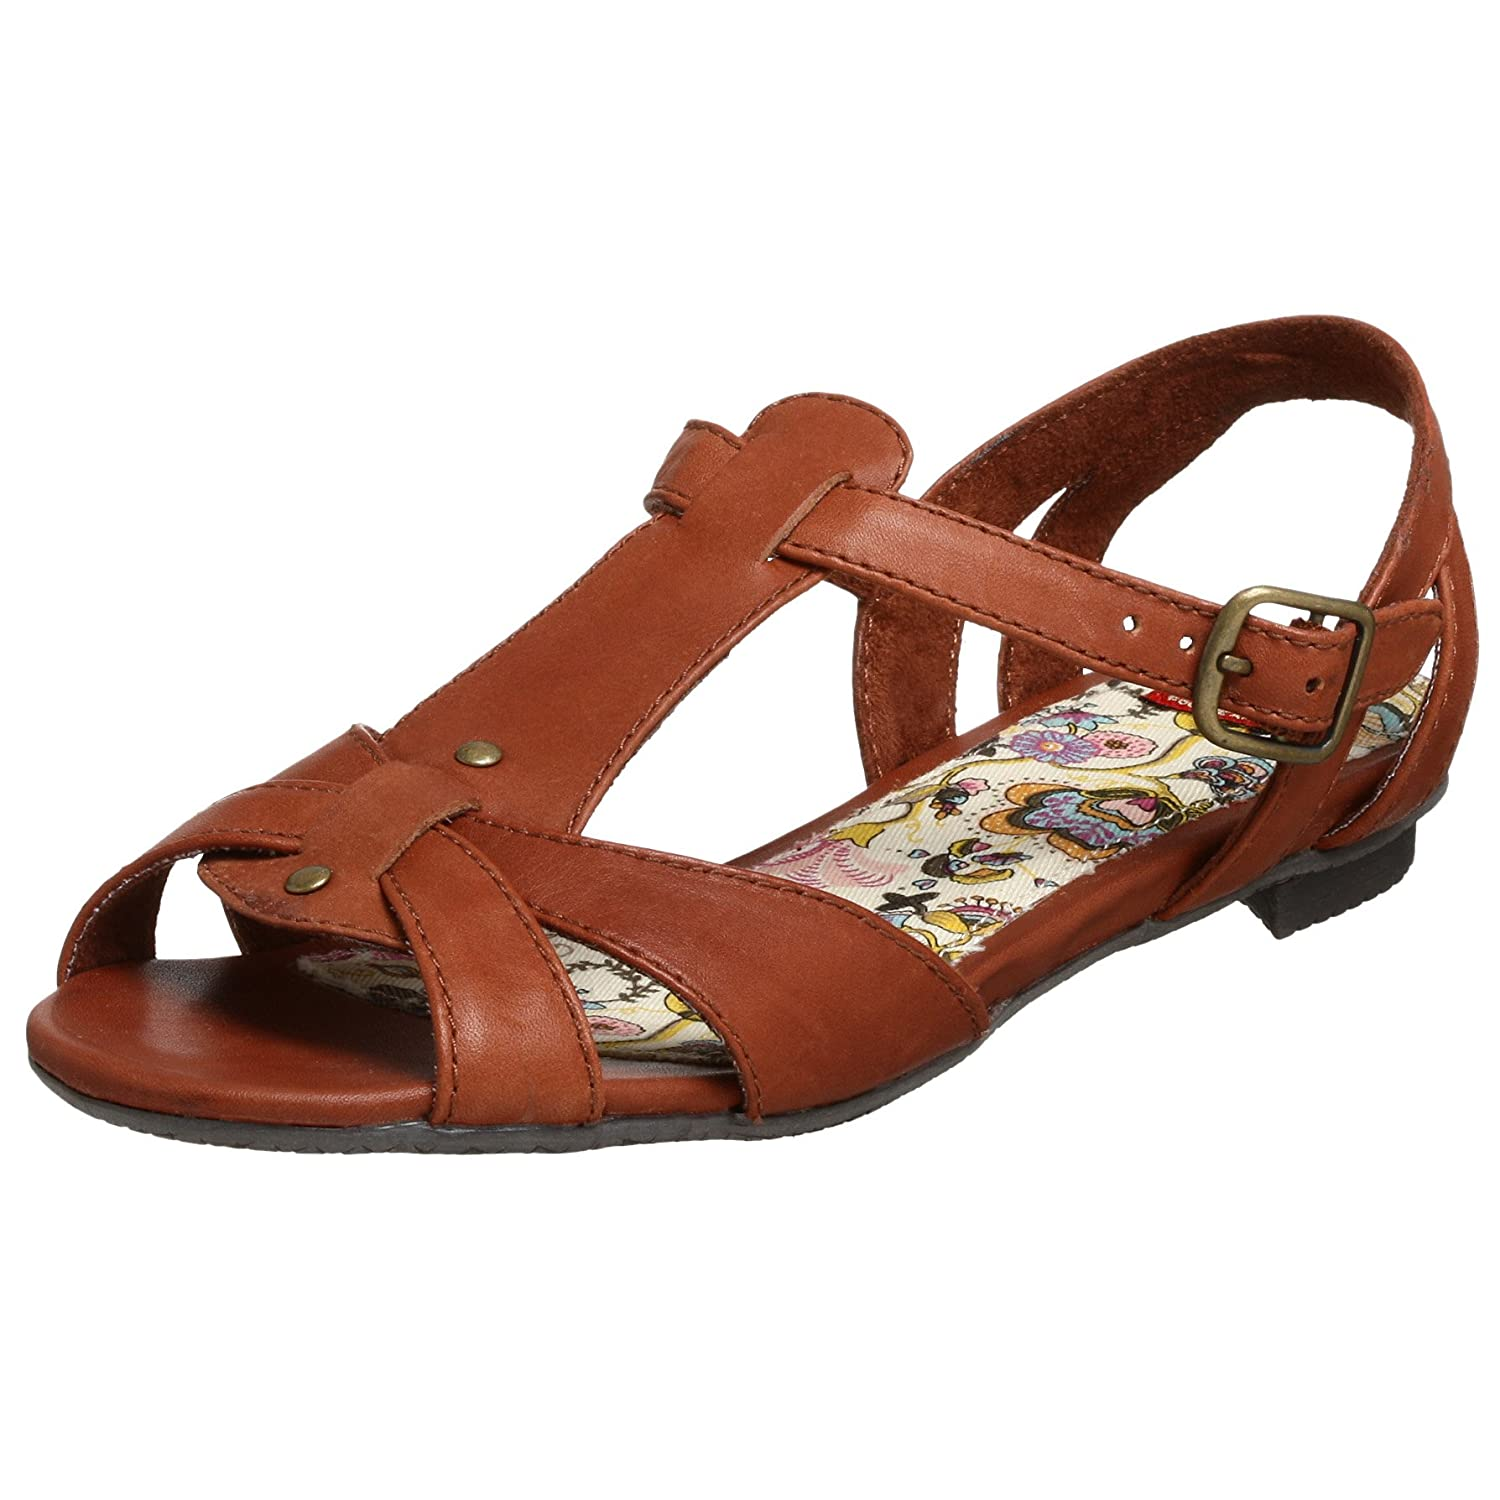 BC Footwear Women's Tsunami Sandal - Free Overnight Shipping & Return Shipping: Endless.com from endless.com